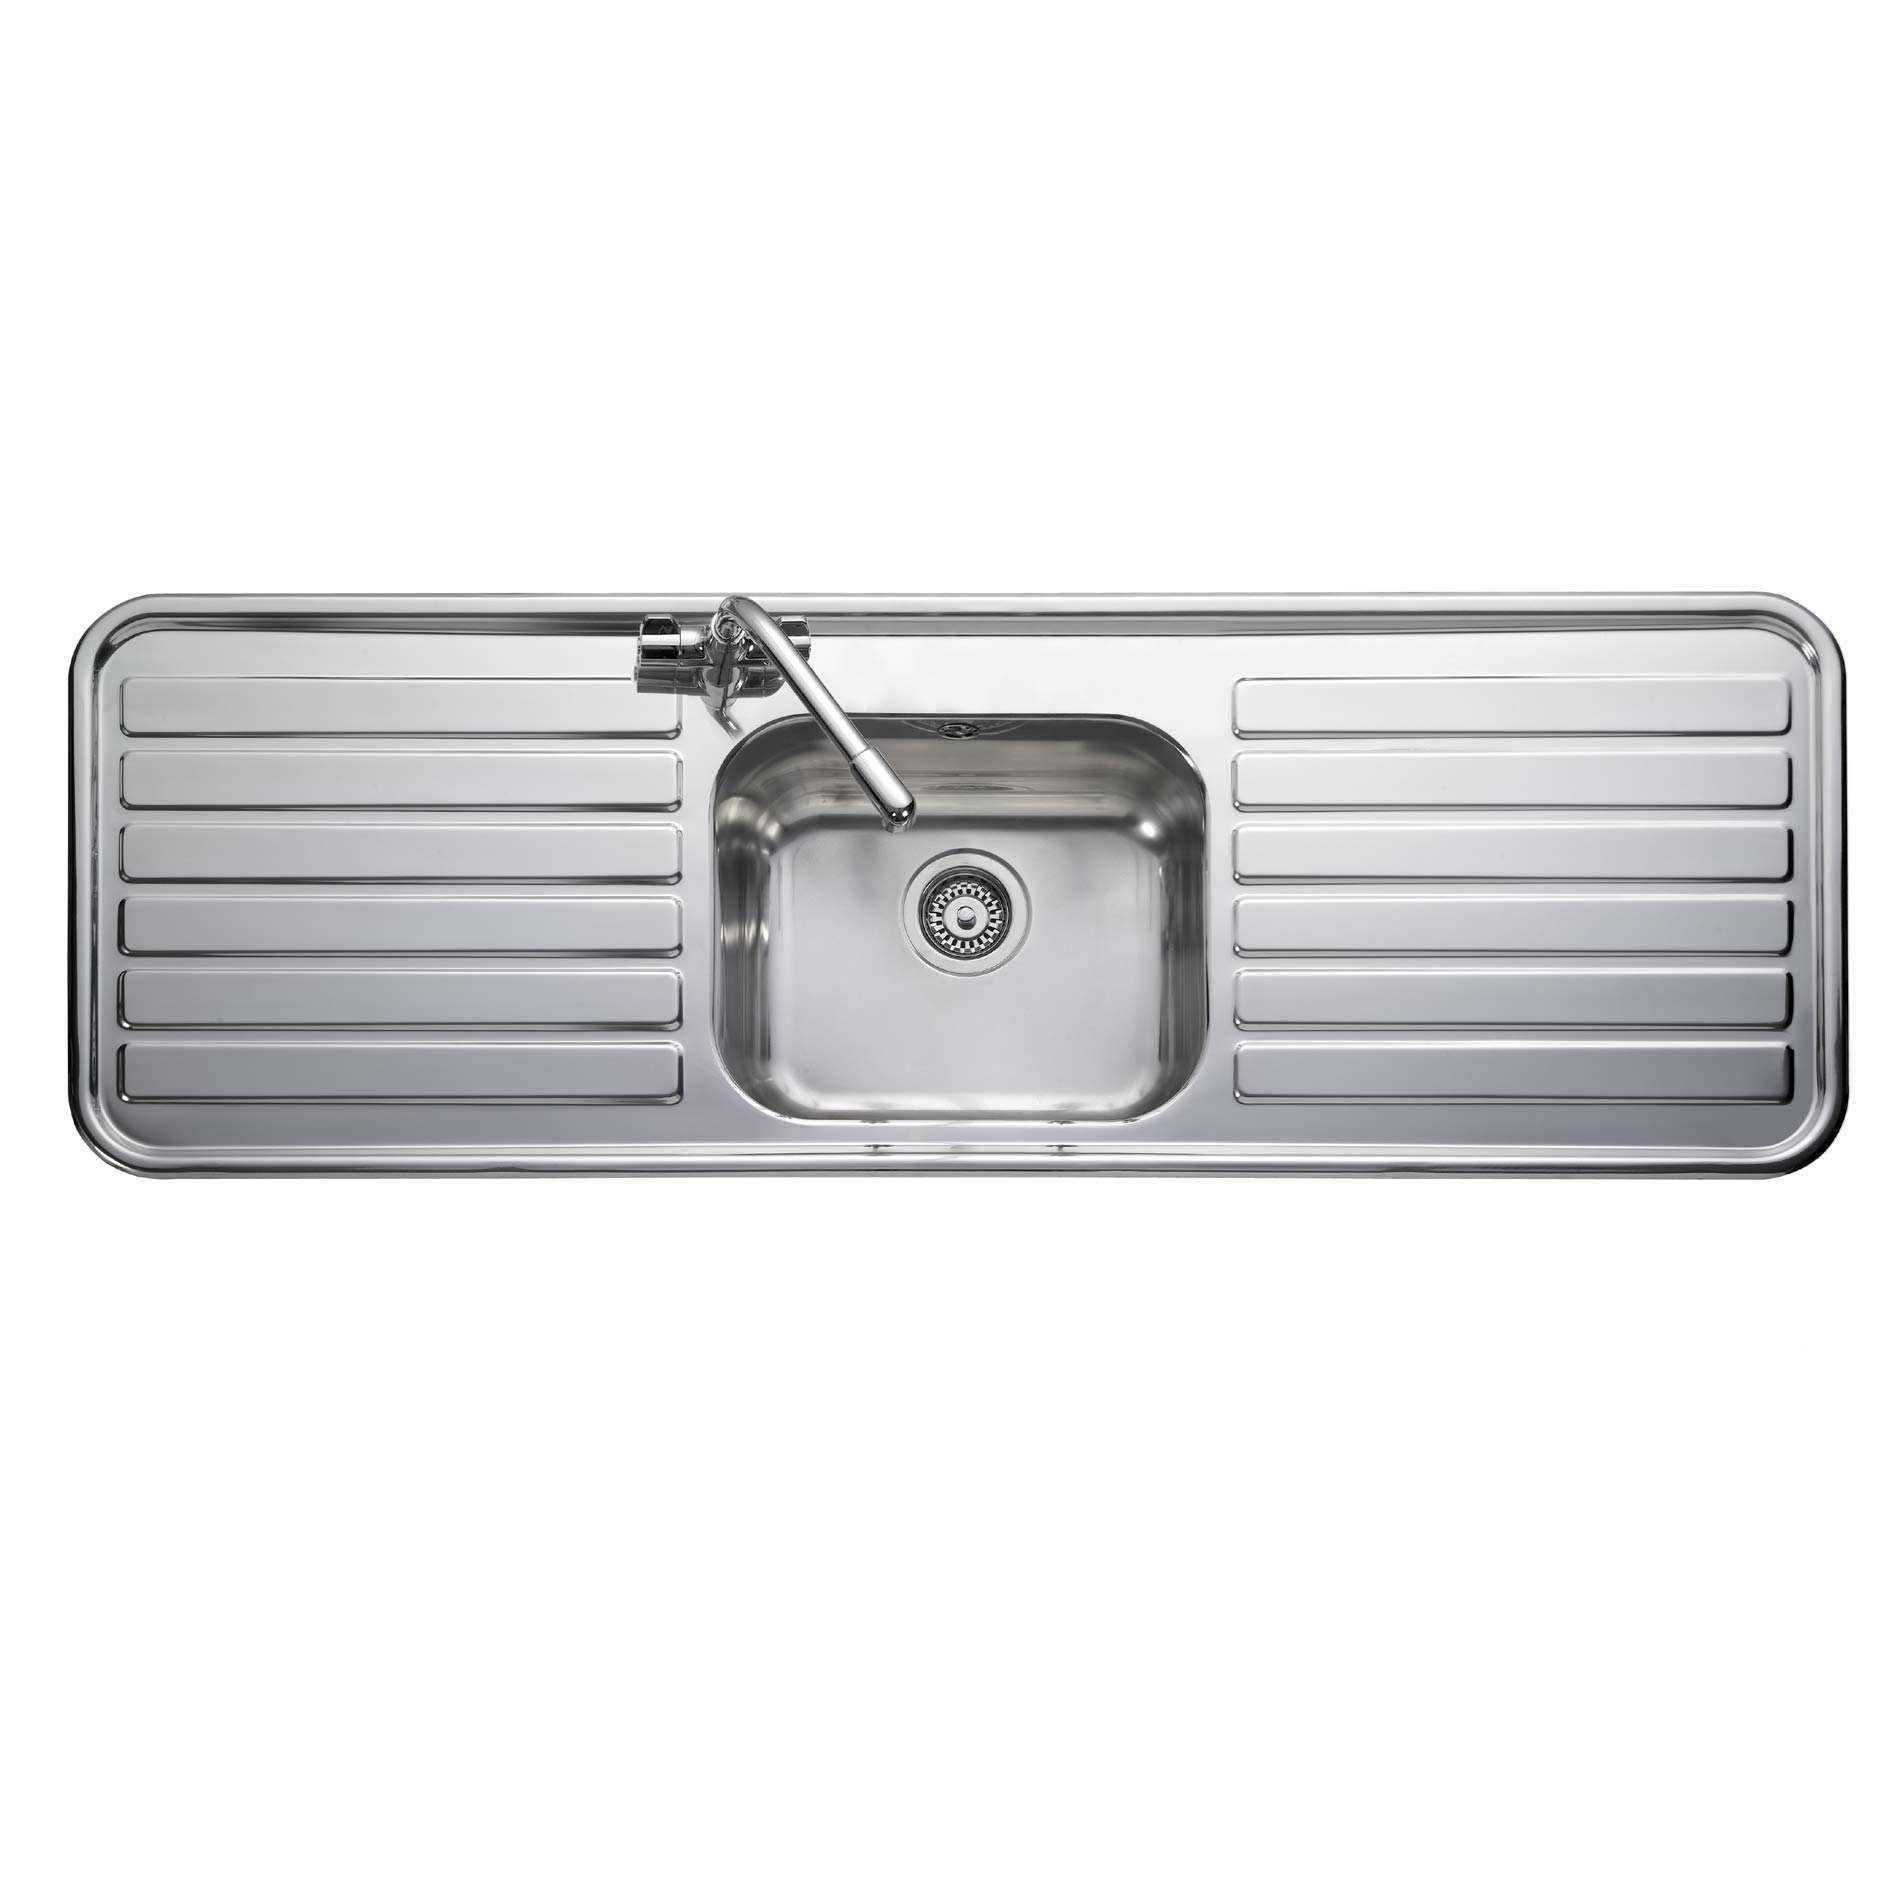 Kitchen Sinks Double Drainer Leisure luxe lx155 stainless steel sink kitchen sinks taps picture of luxe lx155 stainless steel sink workwithnaturefo